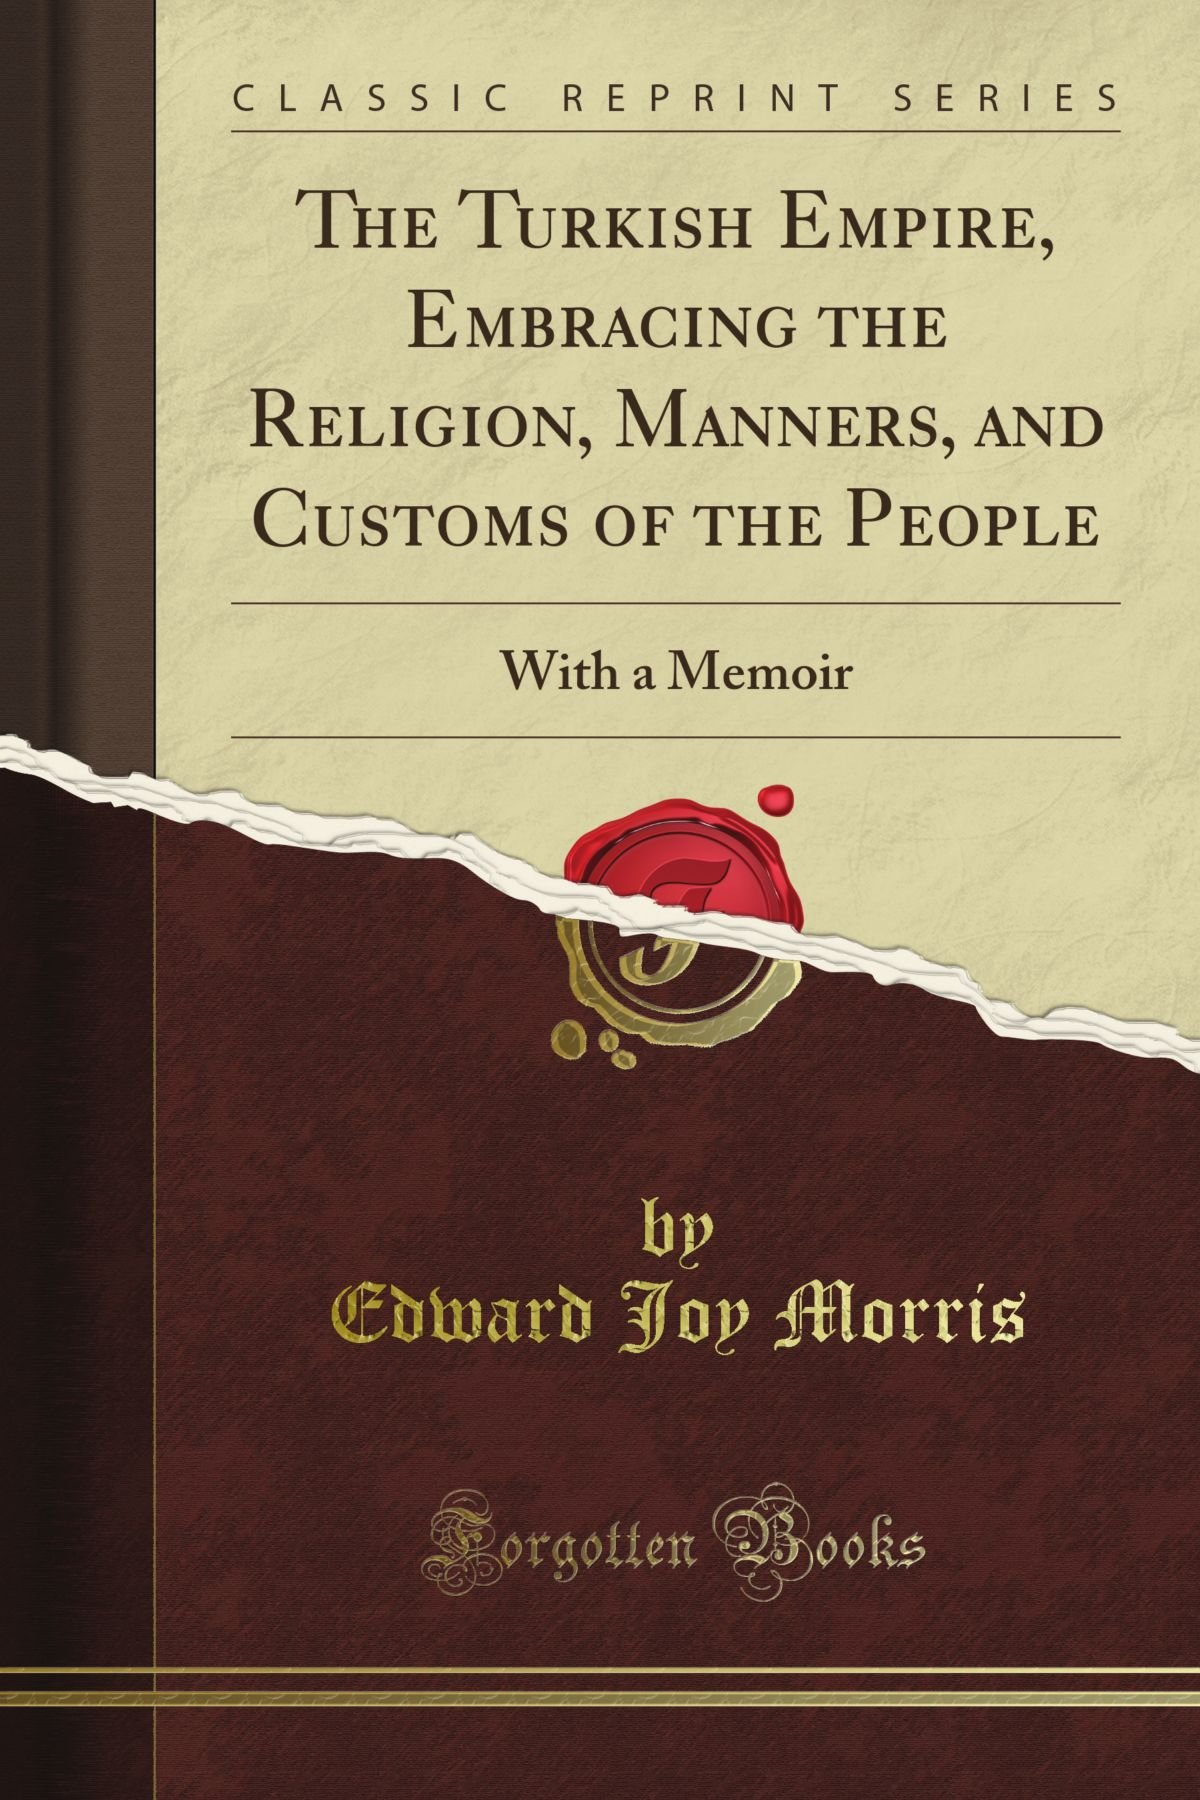 Download The Turkish Empire, Embracing the Religion, Manners, and Customs of the People: With a Memoir (Classic Reprint) ebook